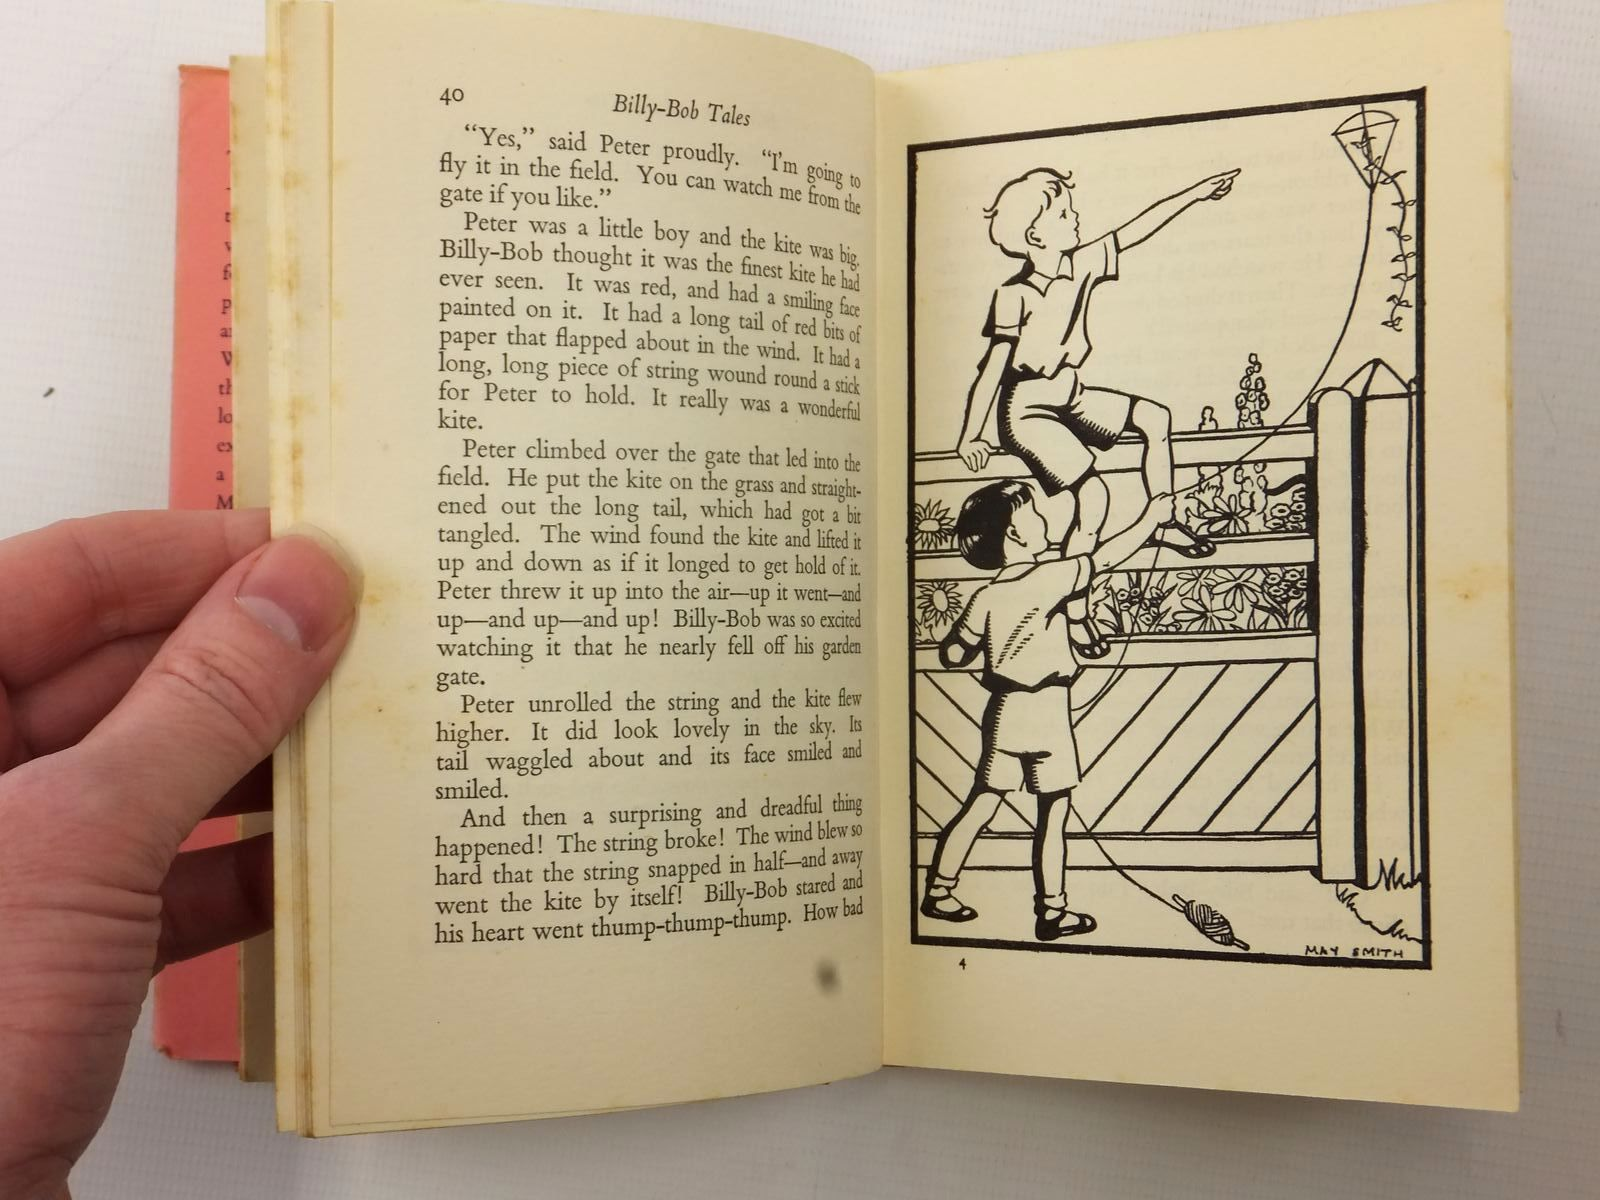 Photo of BILLY-BOB TALES written by Blyton, Enid illustrated by Smith, May published by Methuen & Co. Ltd. (STOCK CODE: 2124054)  for sale by Stella & Rose's Books